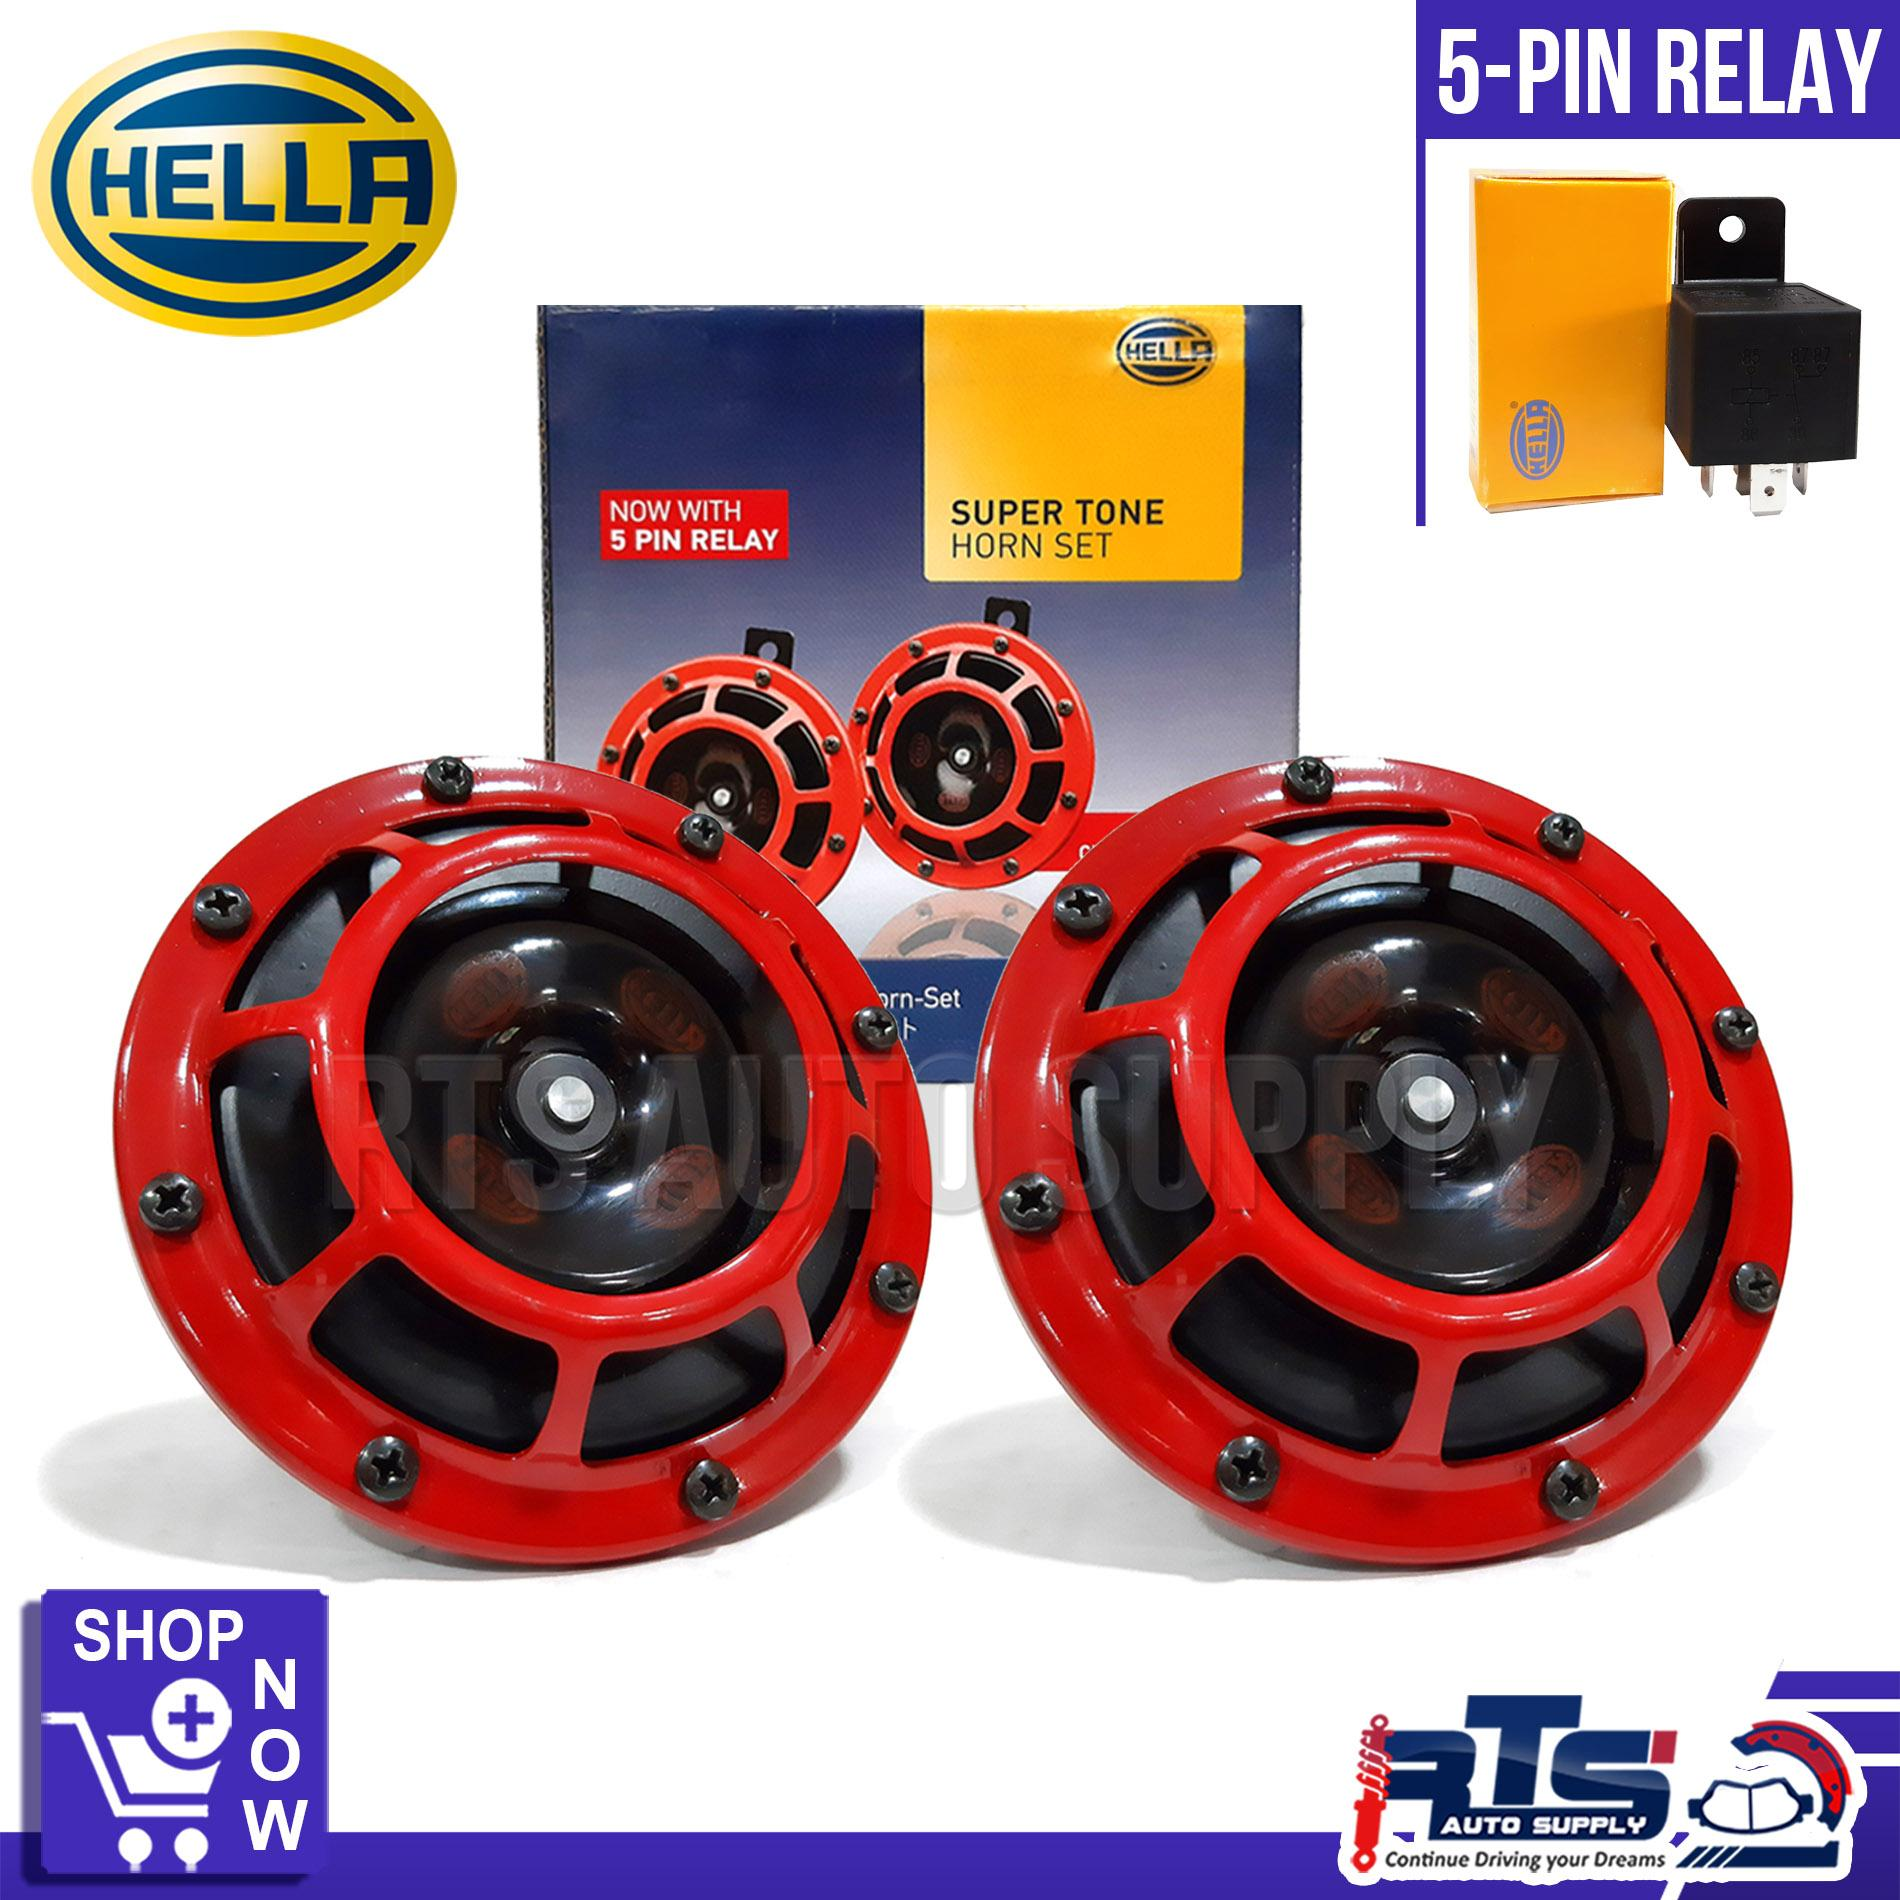 HELLA Super Tone Horn Set with 5 pin relay ( Car and Motorcycle Horn )